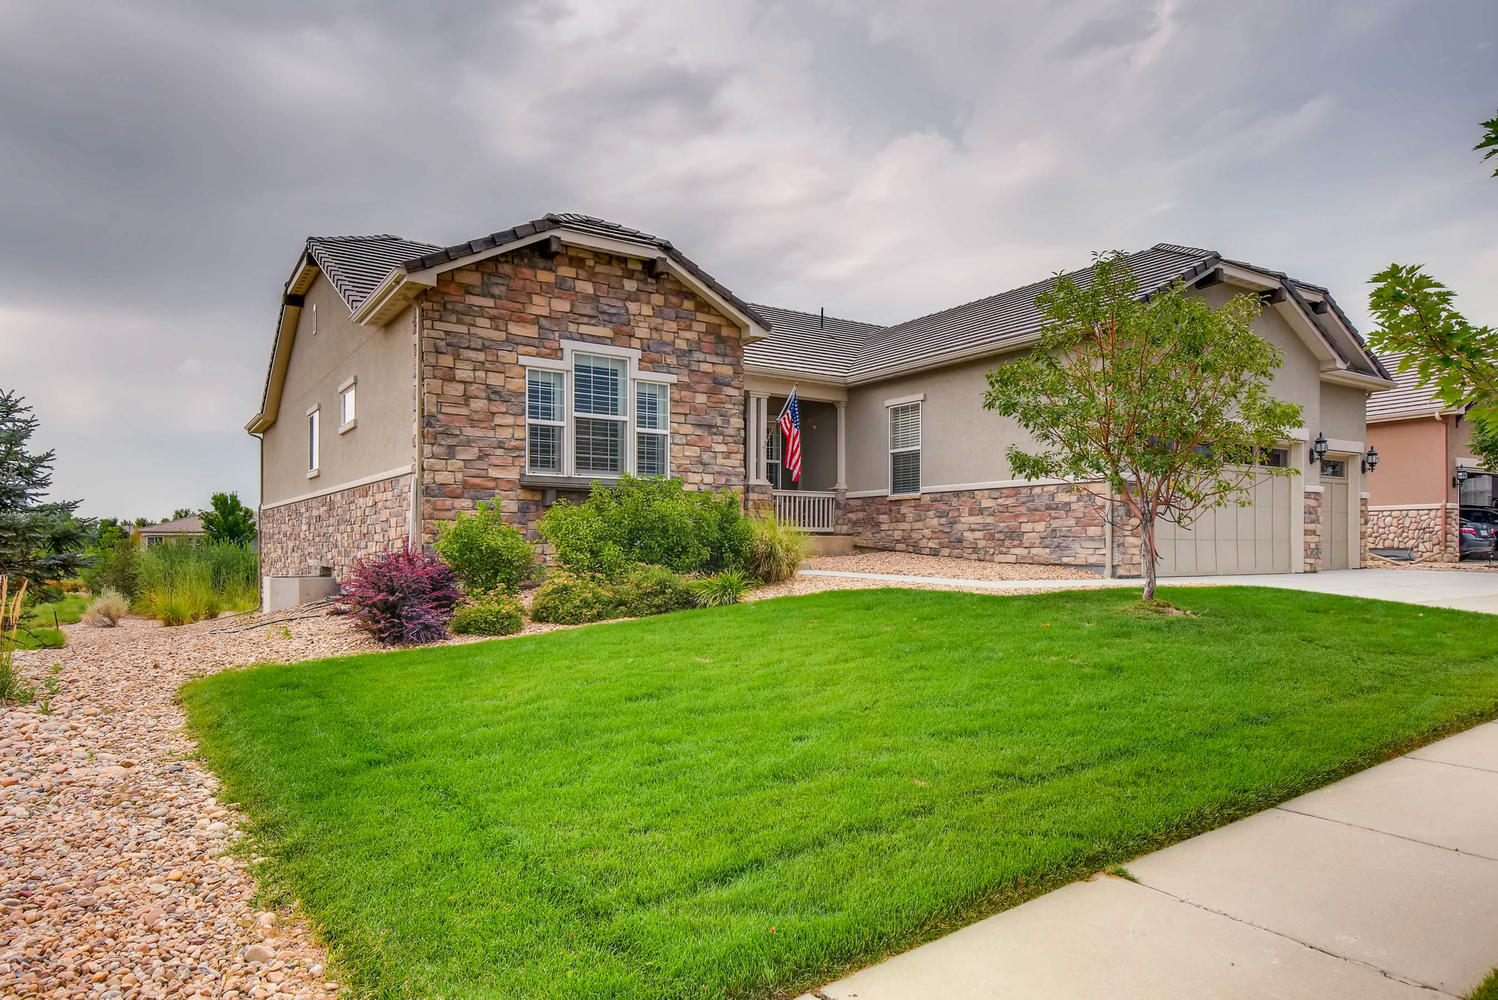 4785 Silver Mountain Loop-large-002-5-Exterior Front-1499x1000-72dpi.jpg